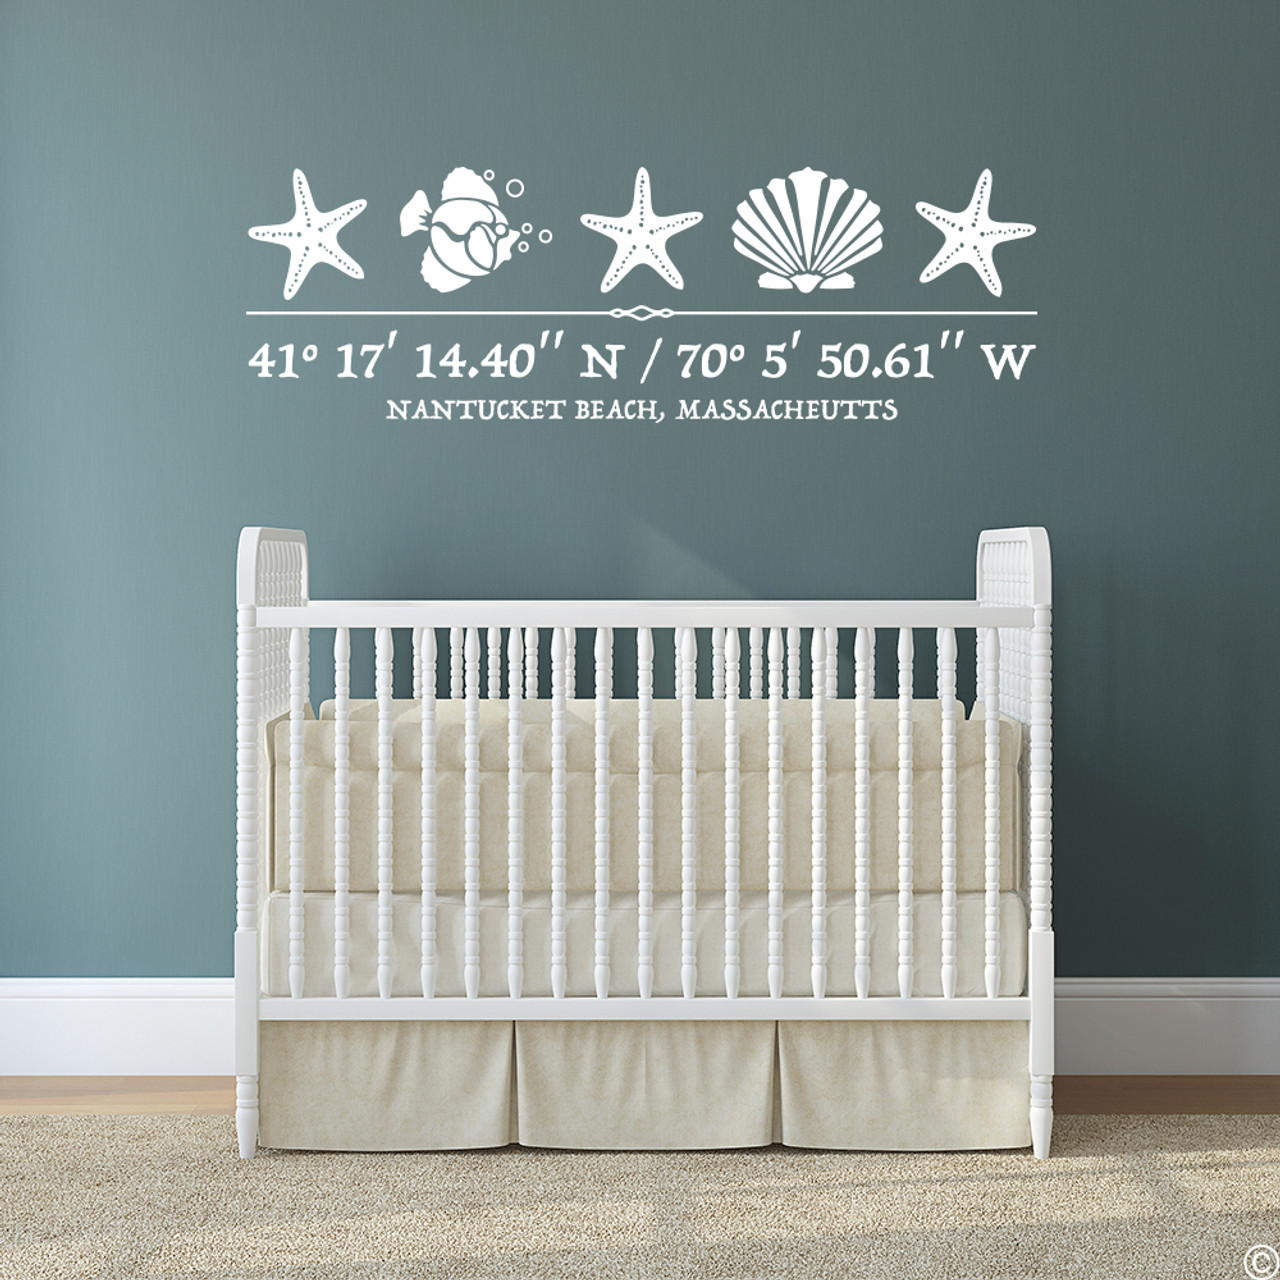 Sea Life wall decal, includes three starfish, one shell, one fish, and customizable GPS coordinates with town and state name. Shown here in white vinyl and on a nursery wall above a crib.